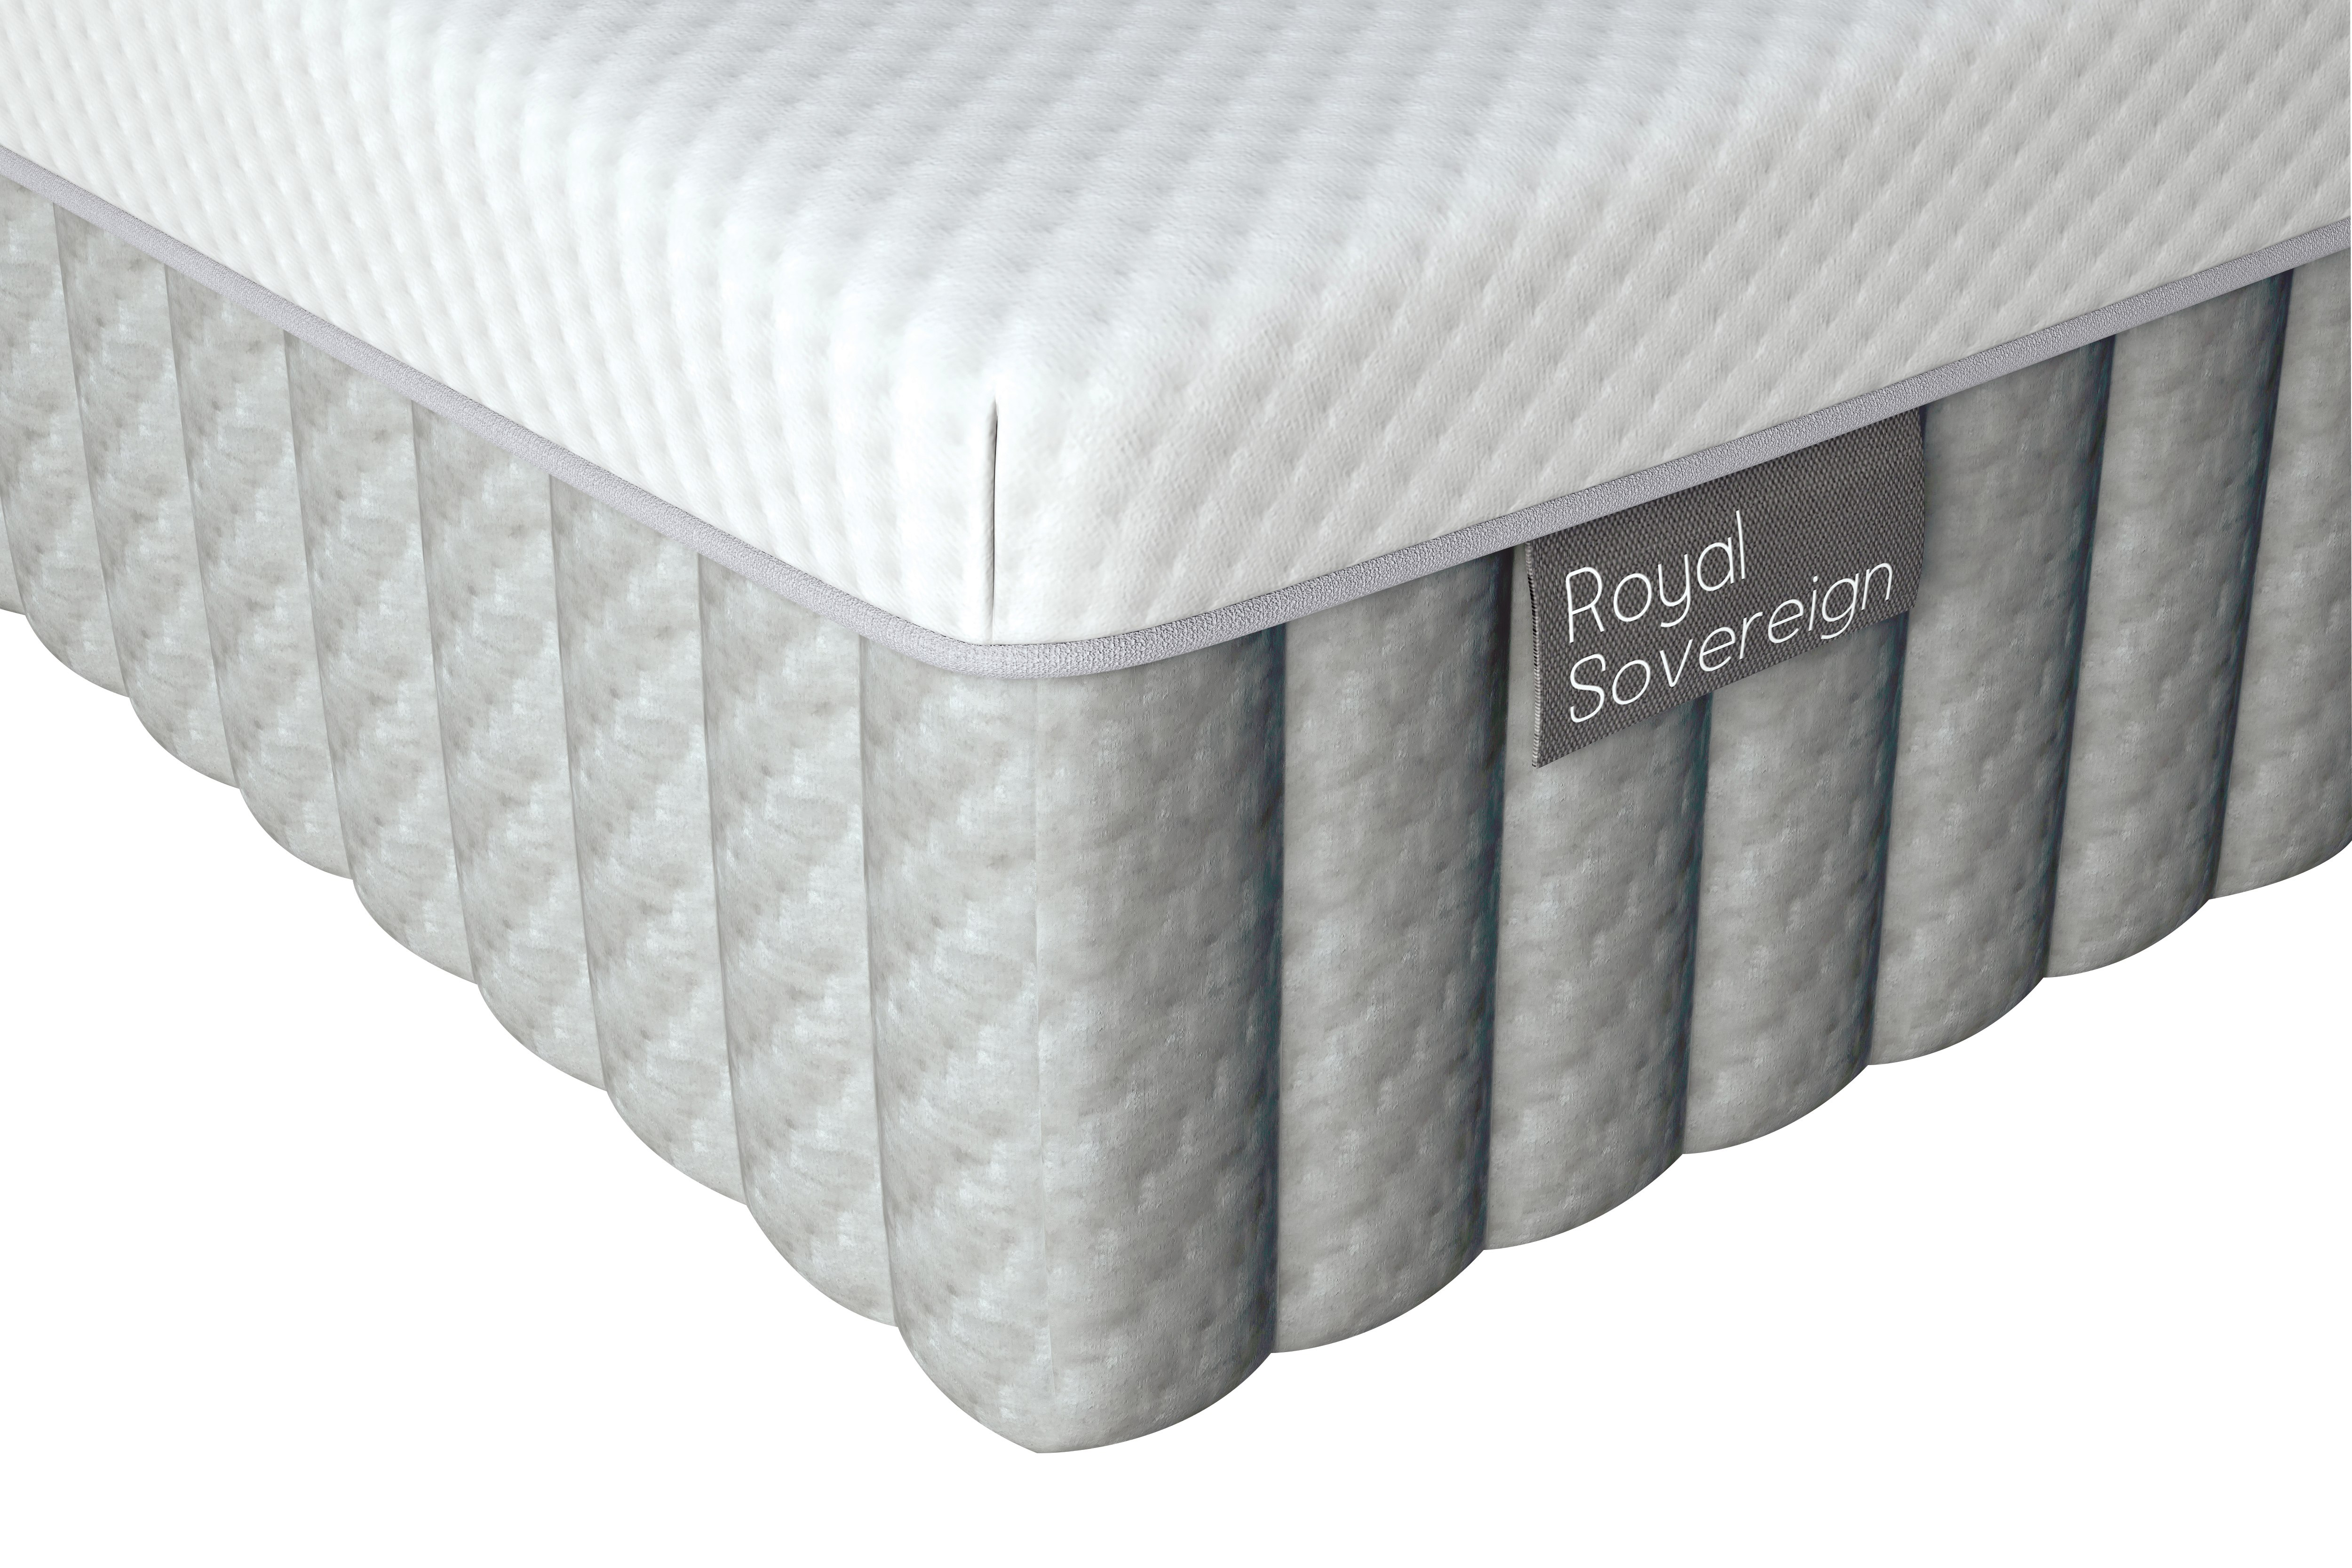 royal sovereign mattress available from the world of beds, doncaster